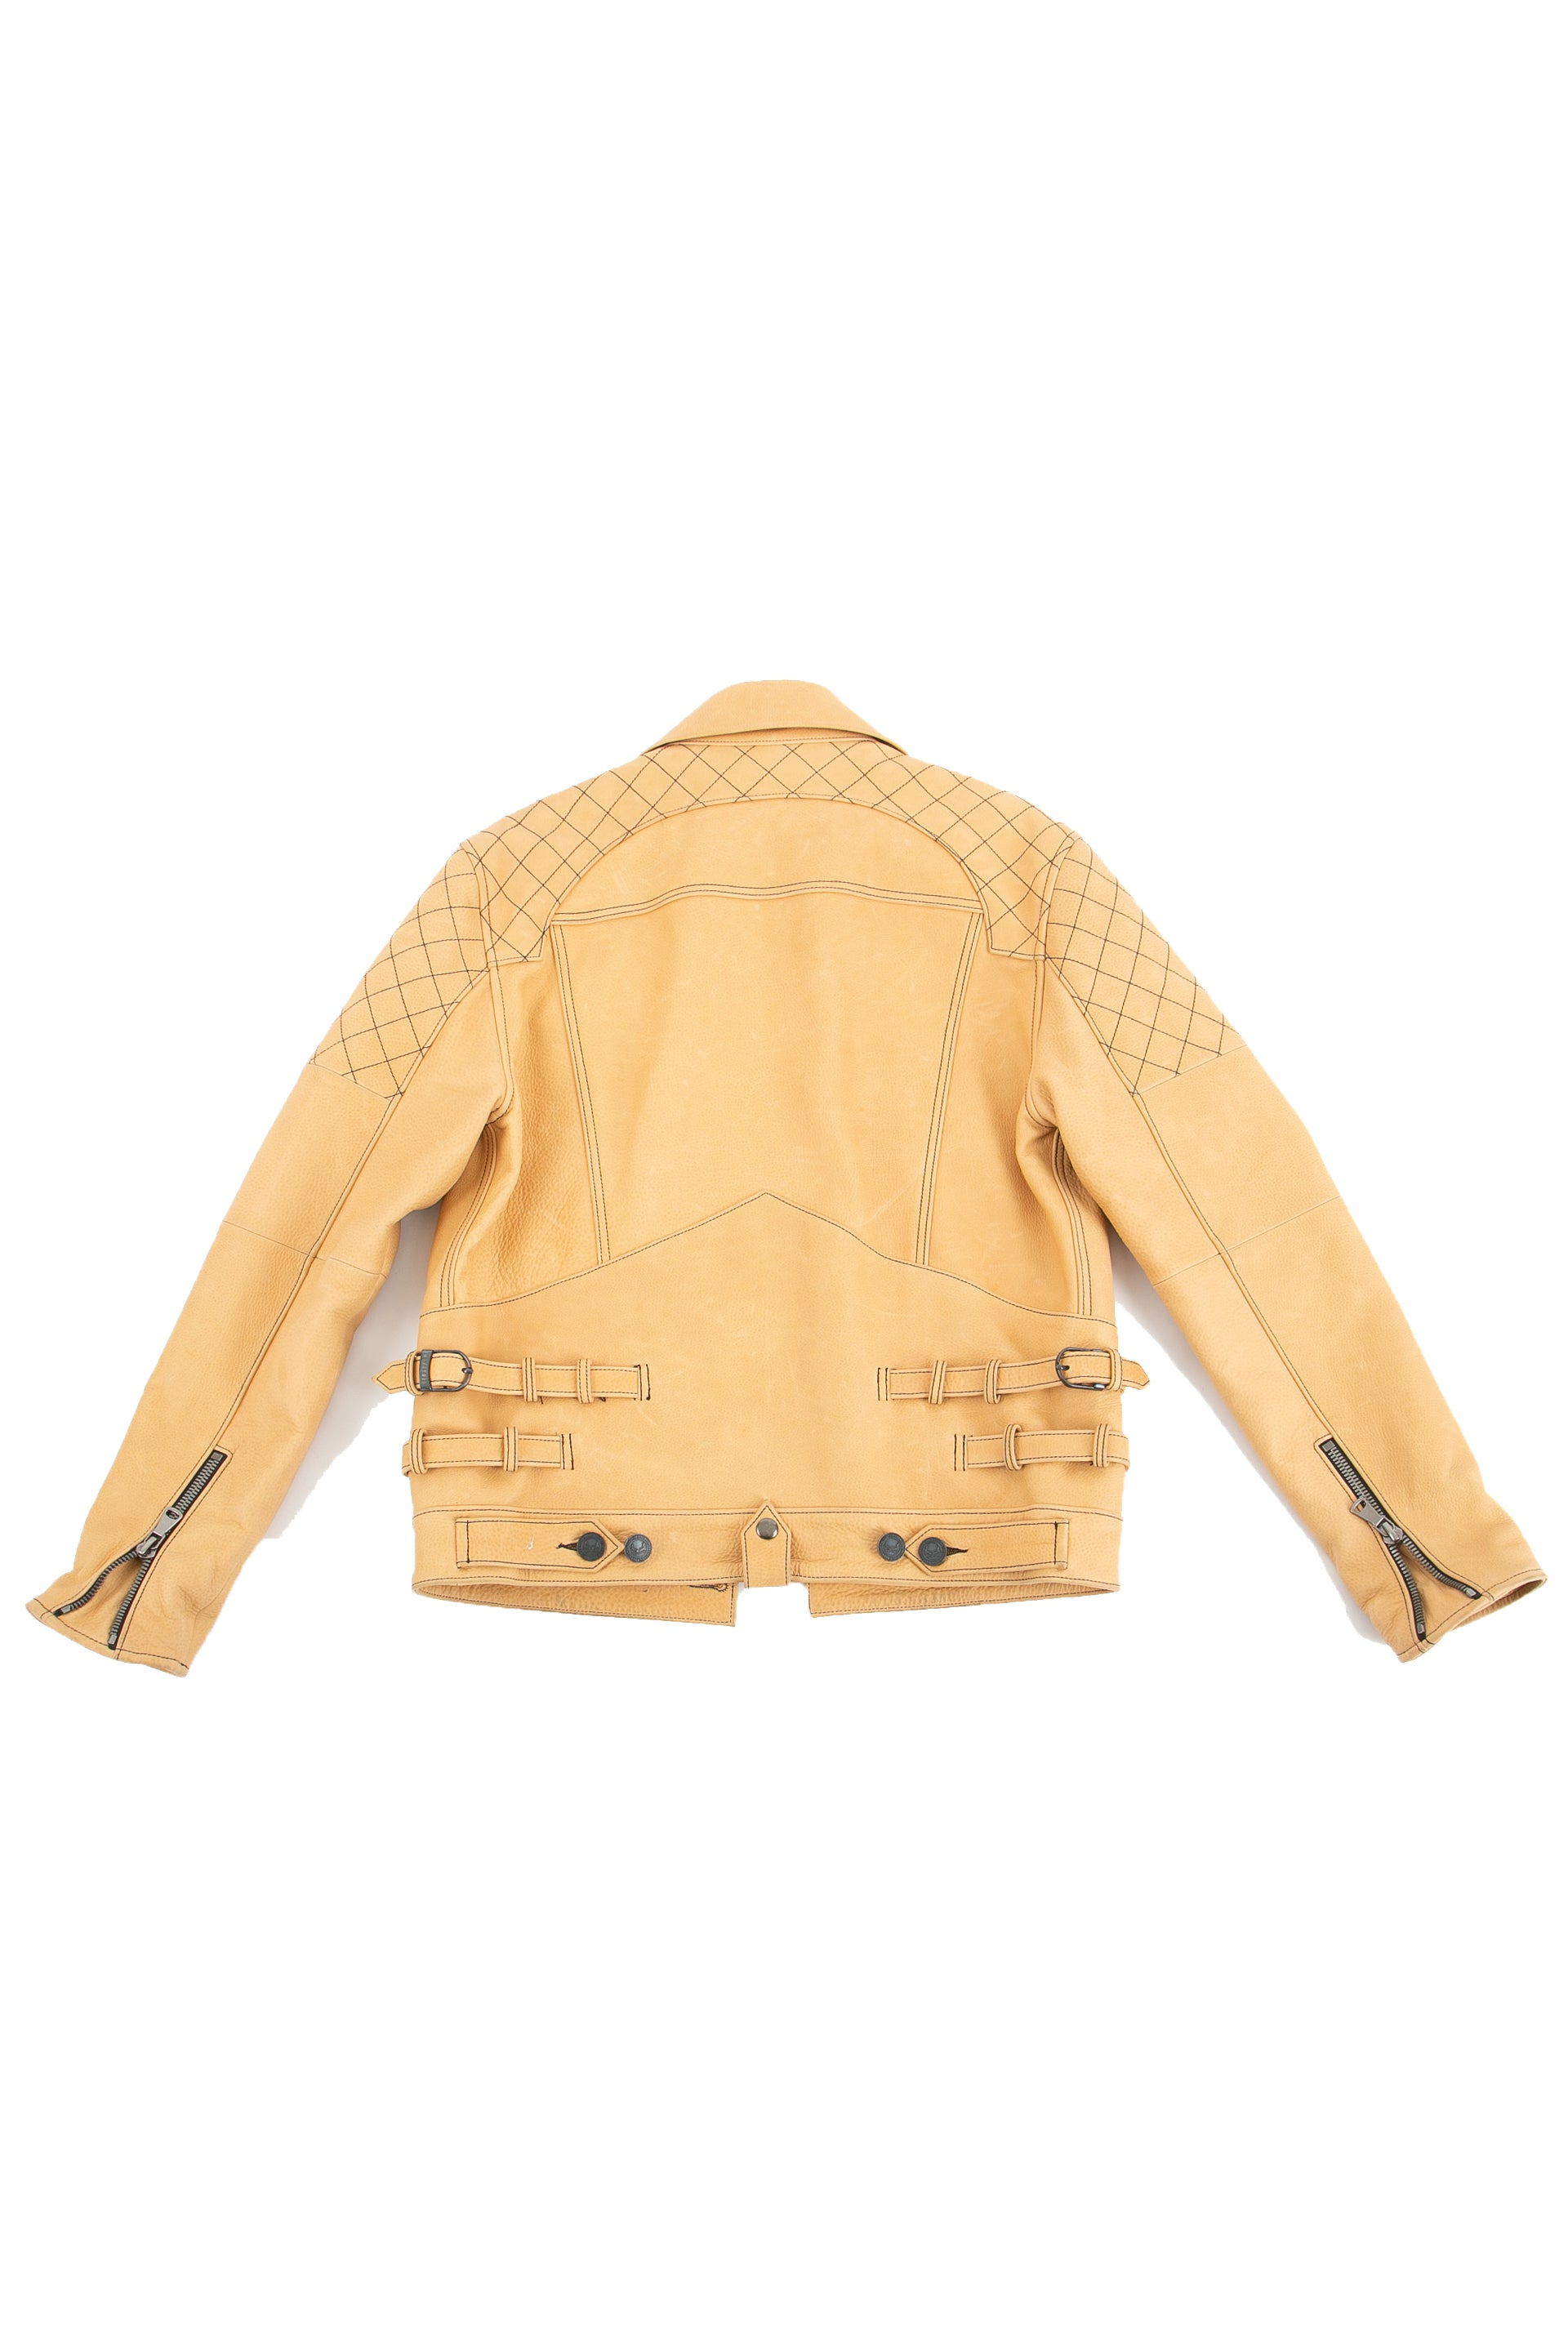 Backside of The Natural leather jacket